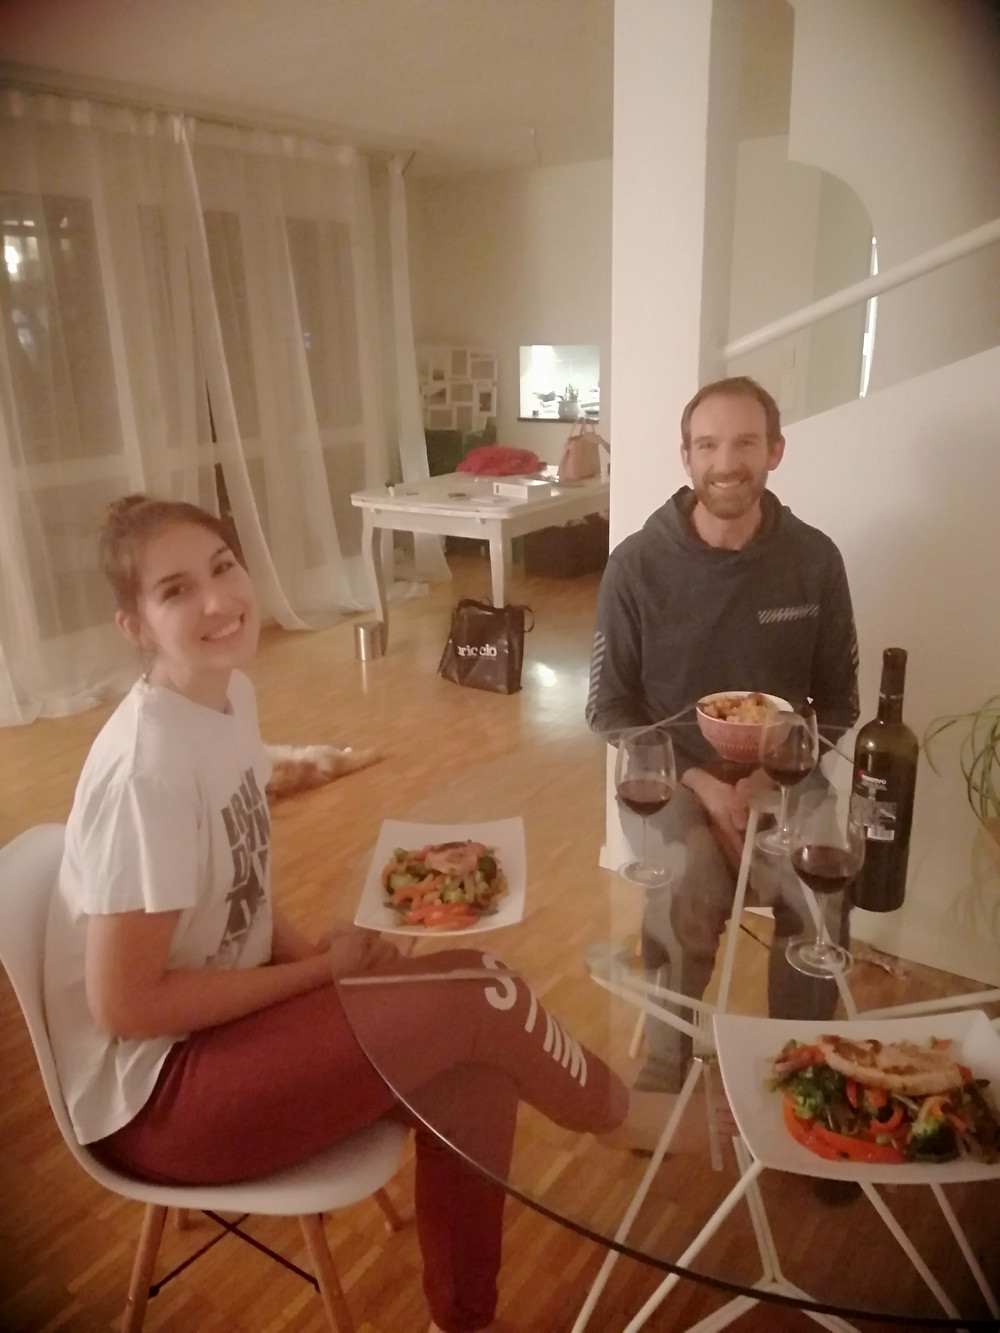 Daughter's apartment move done, time for dinner in her new home